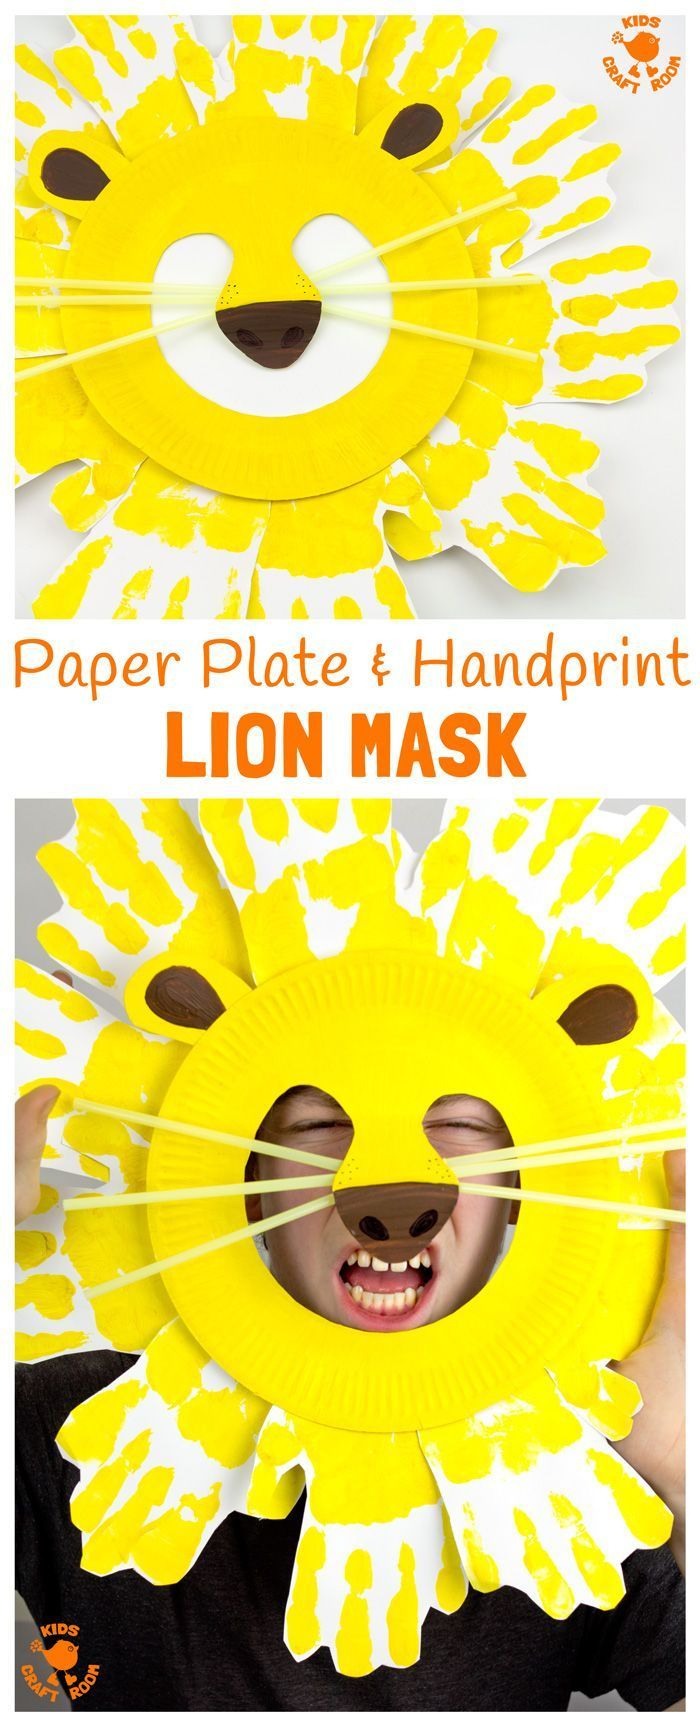 Kids will love adorable Handprint and Paper Plate Lion Masks. These easy paper plate craft animal masks are fun for the dress up box and a great way to inspire dramatic play.